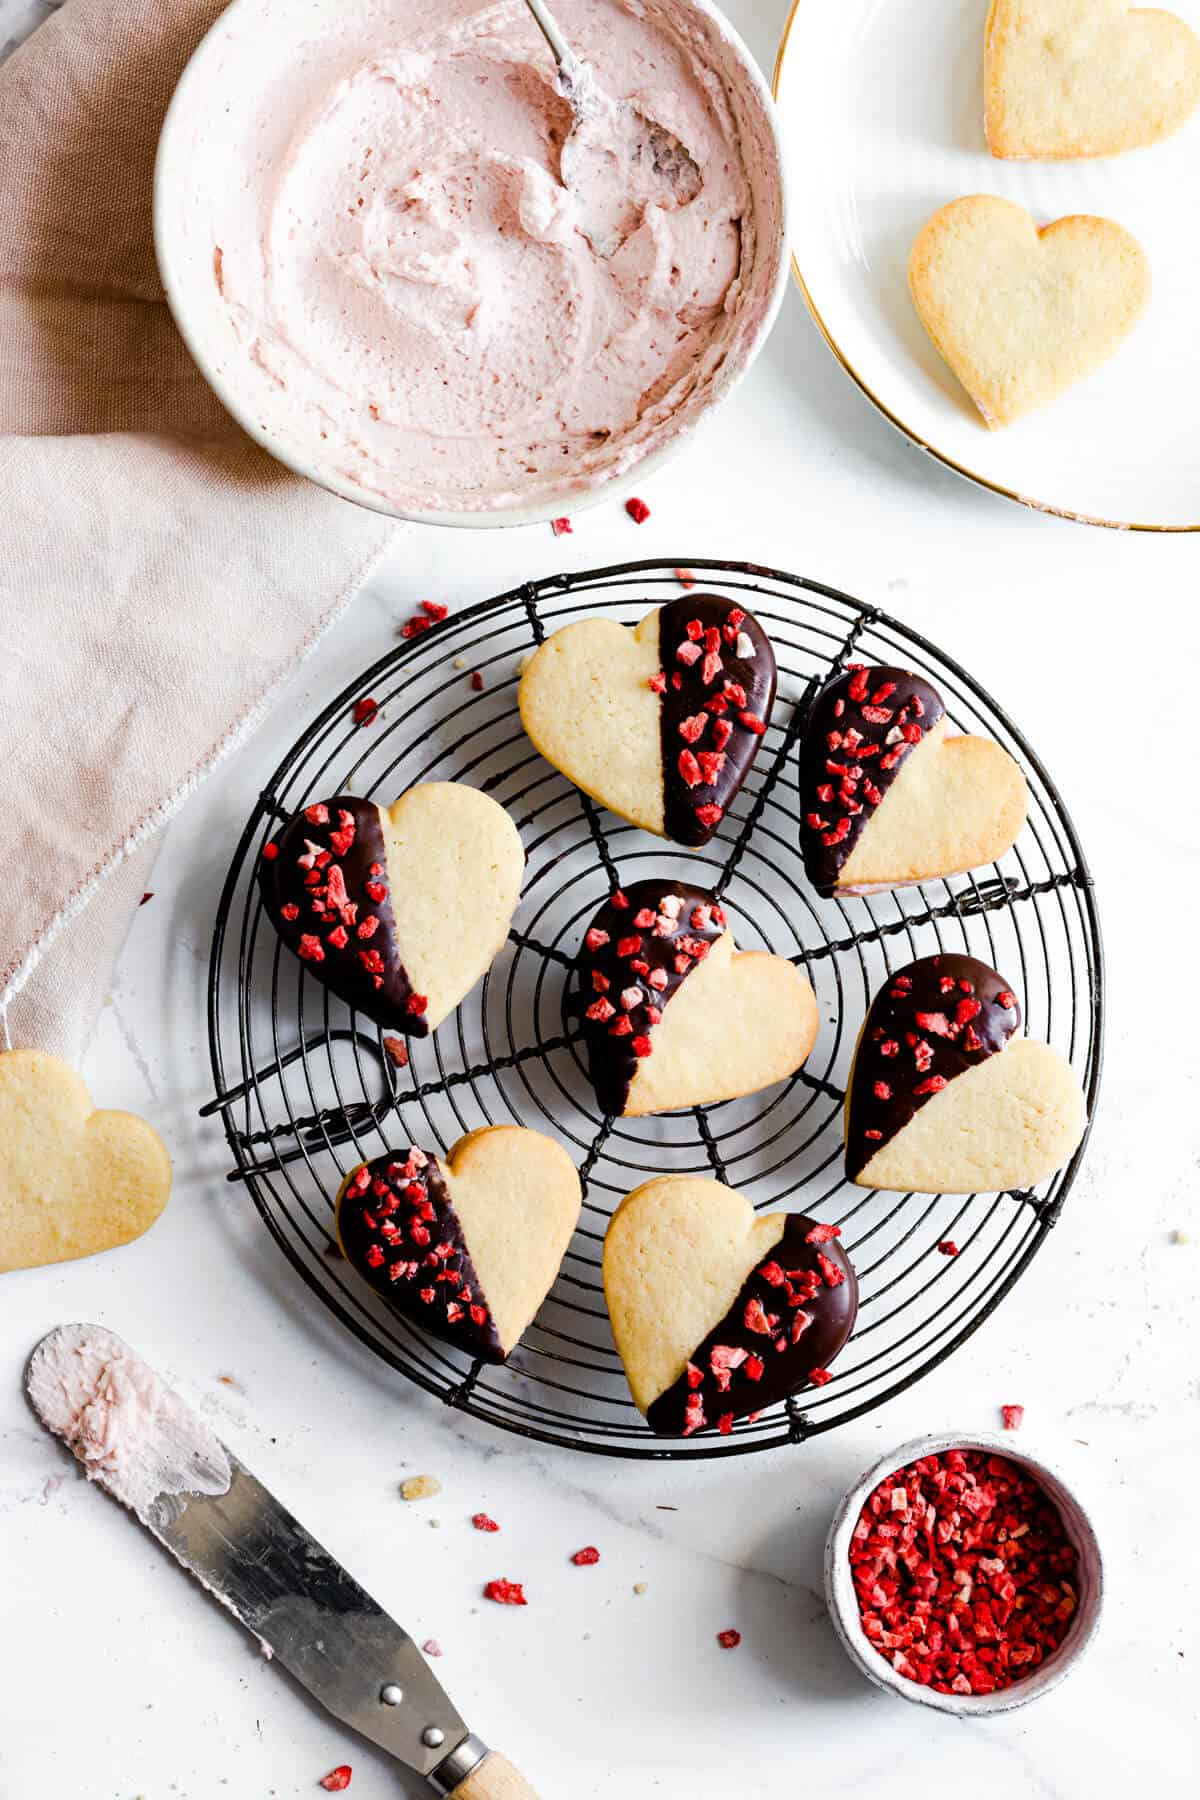 top view of sugar cookies dipped in chocolate and sprinkled with dried strawberries